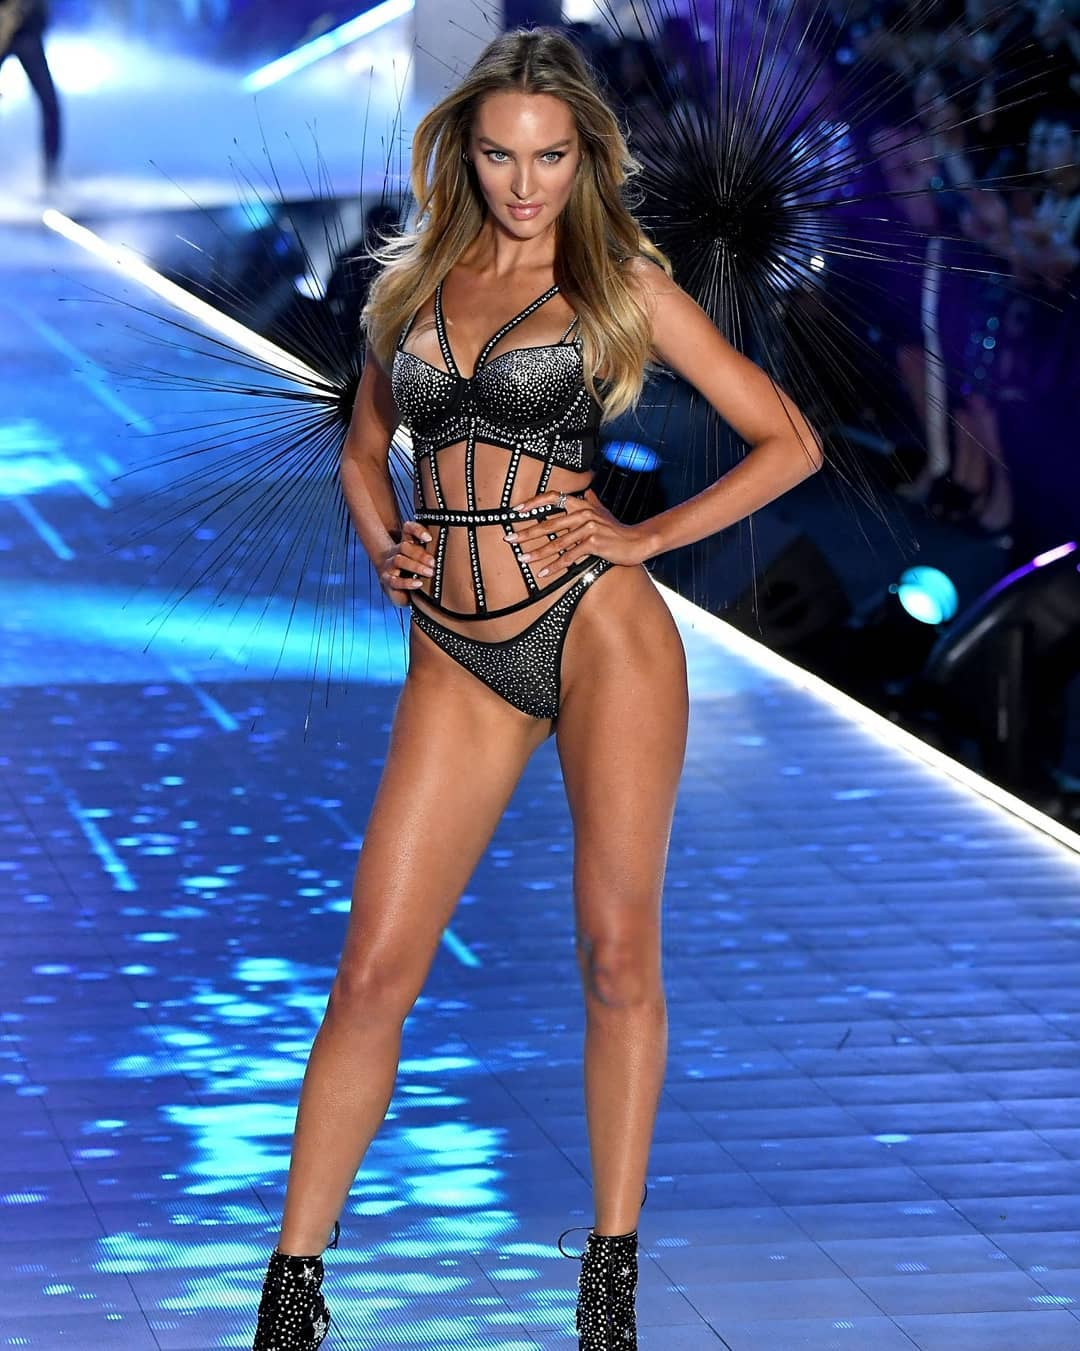 Candice Swanepoel Hot Ramp Walk Photos